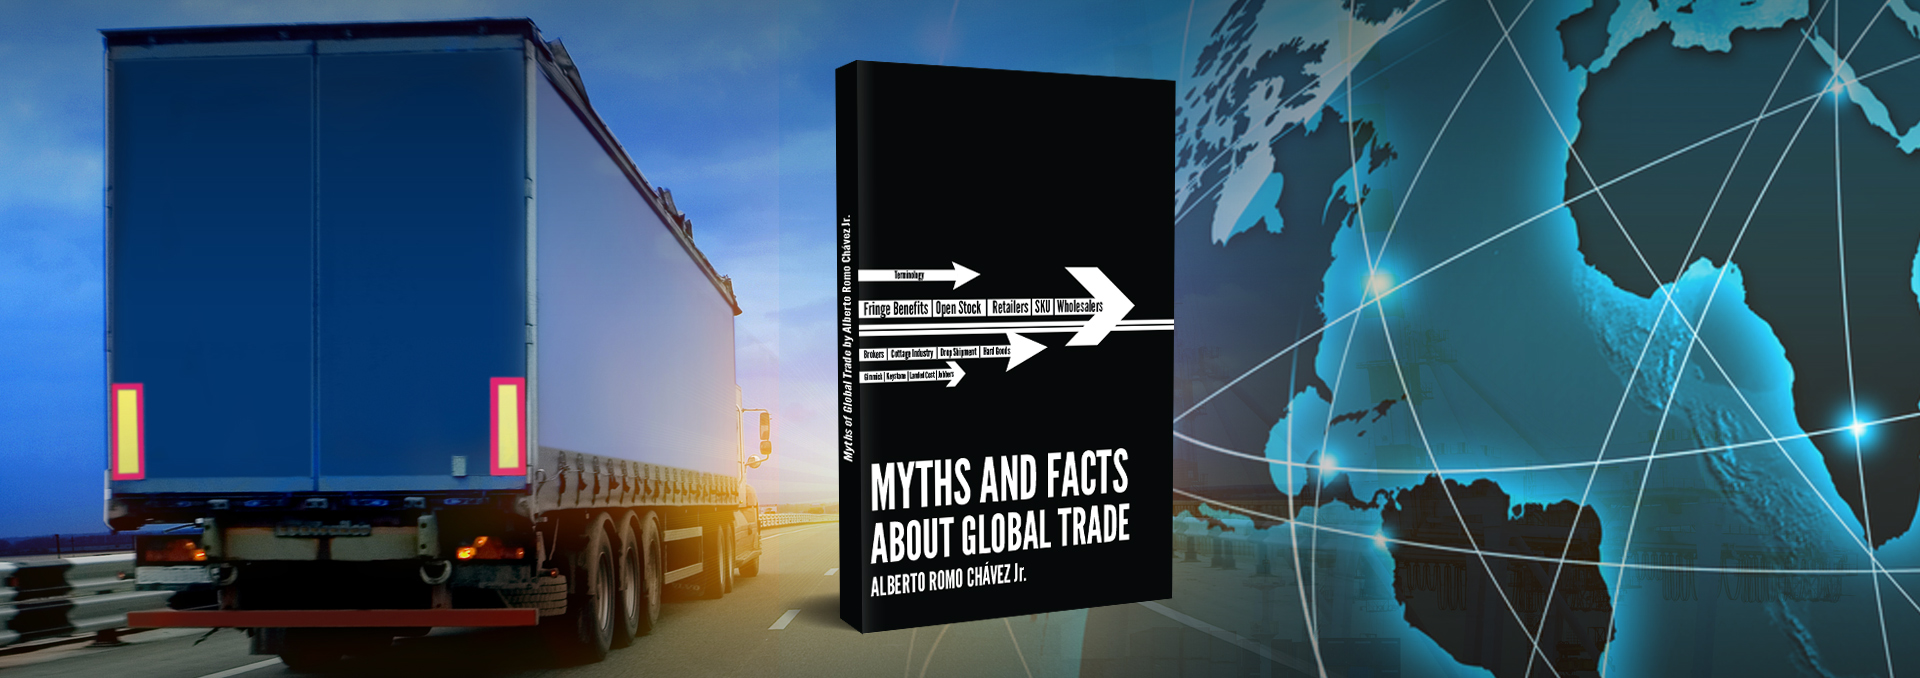 Myths and facts about global trade